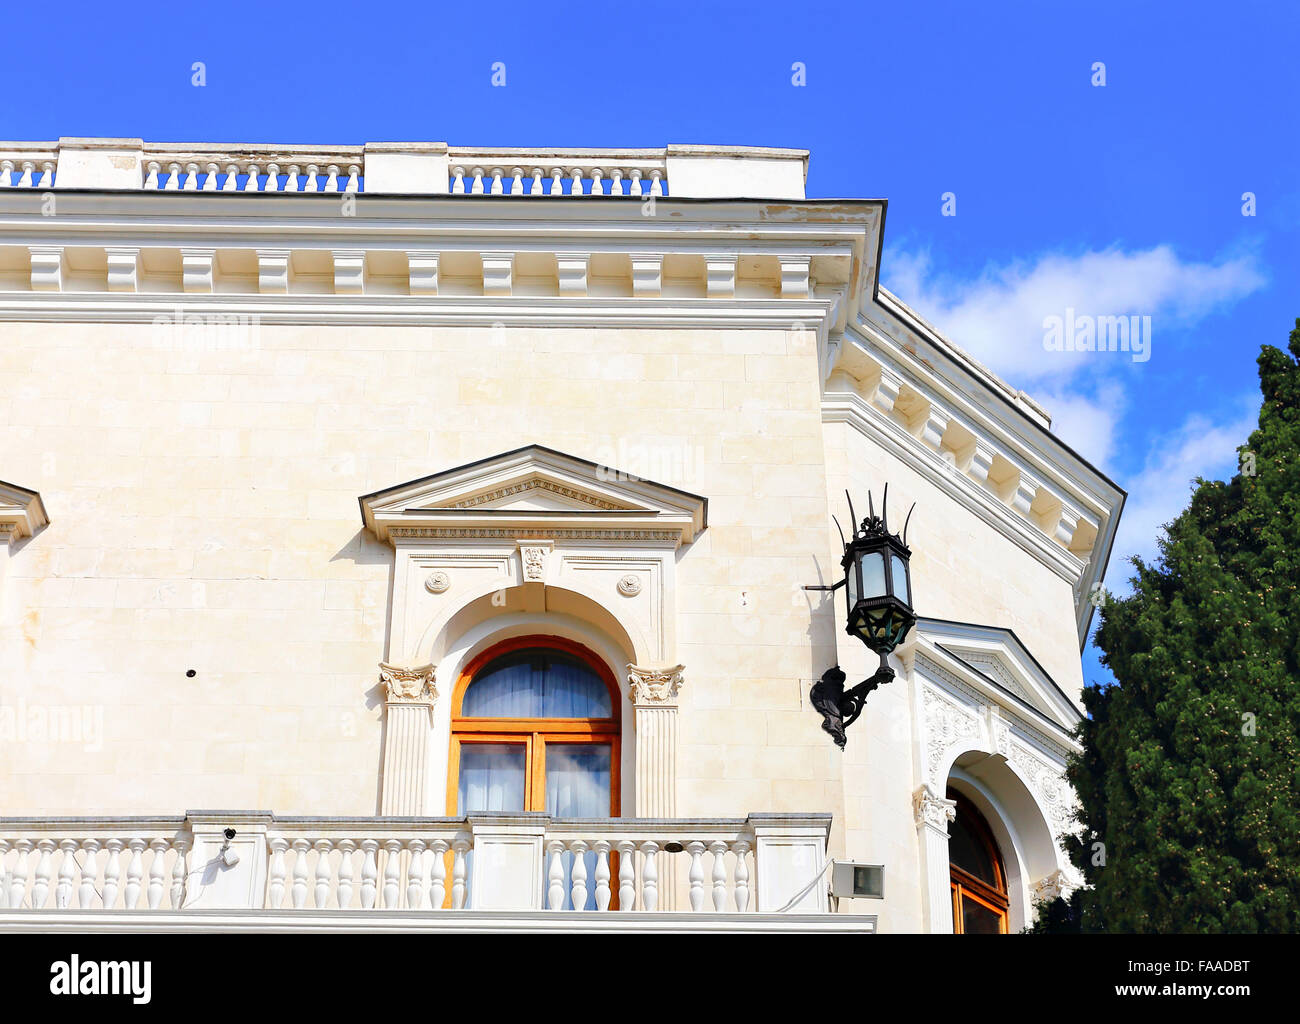 Wall of white classical building with marble balcony - Stock Image